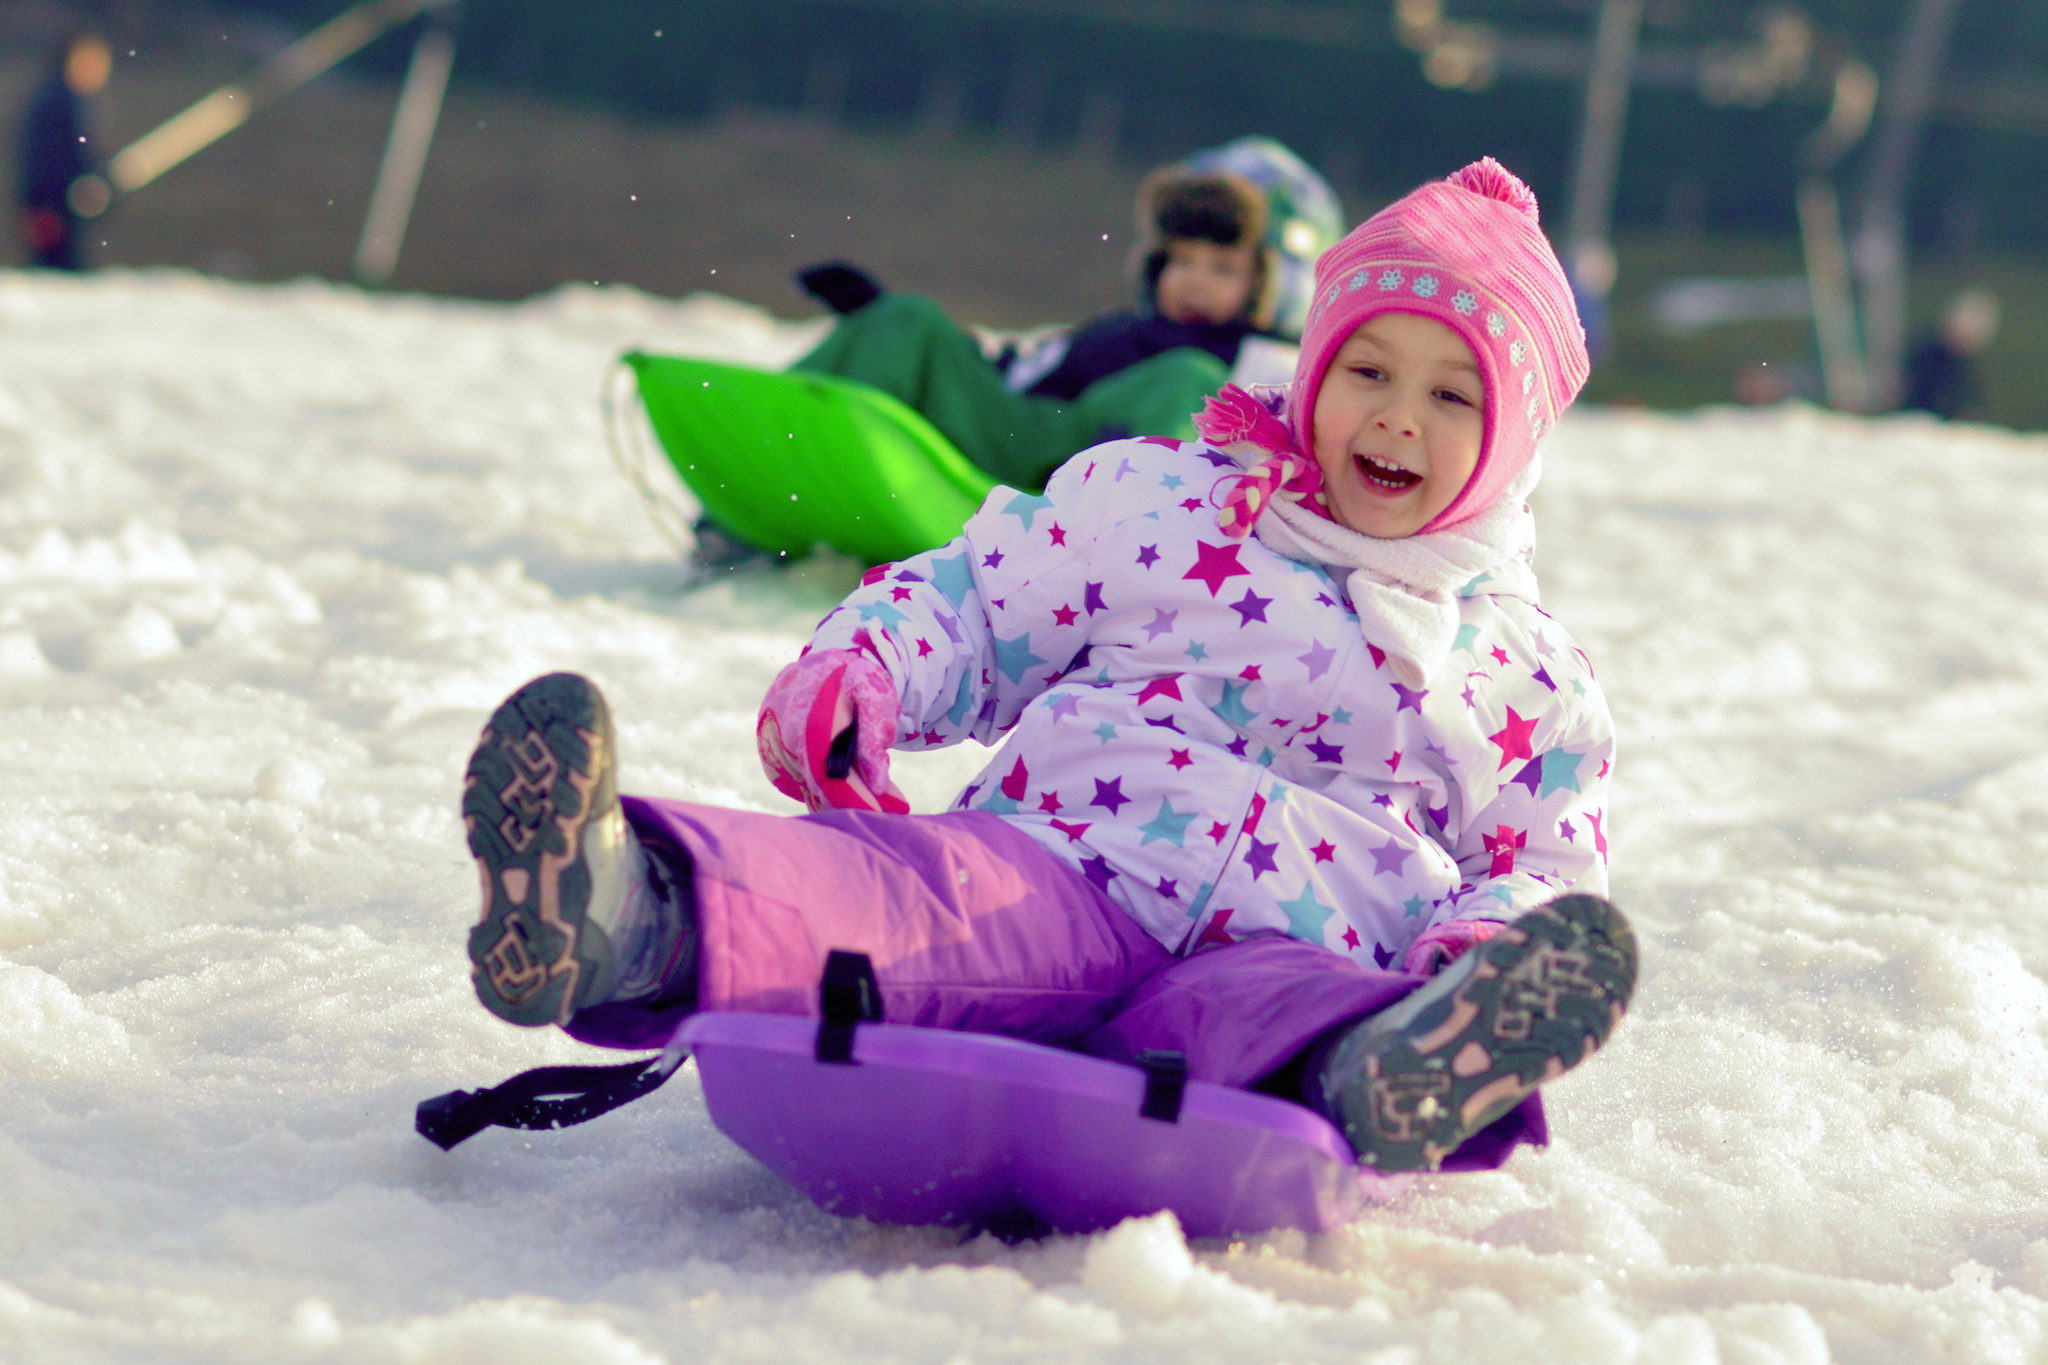 Best Sledding Hills In New York City For Families - The best sledding hills in north america